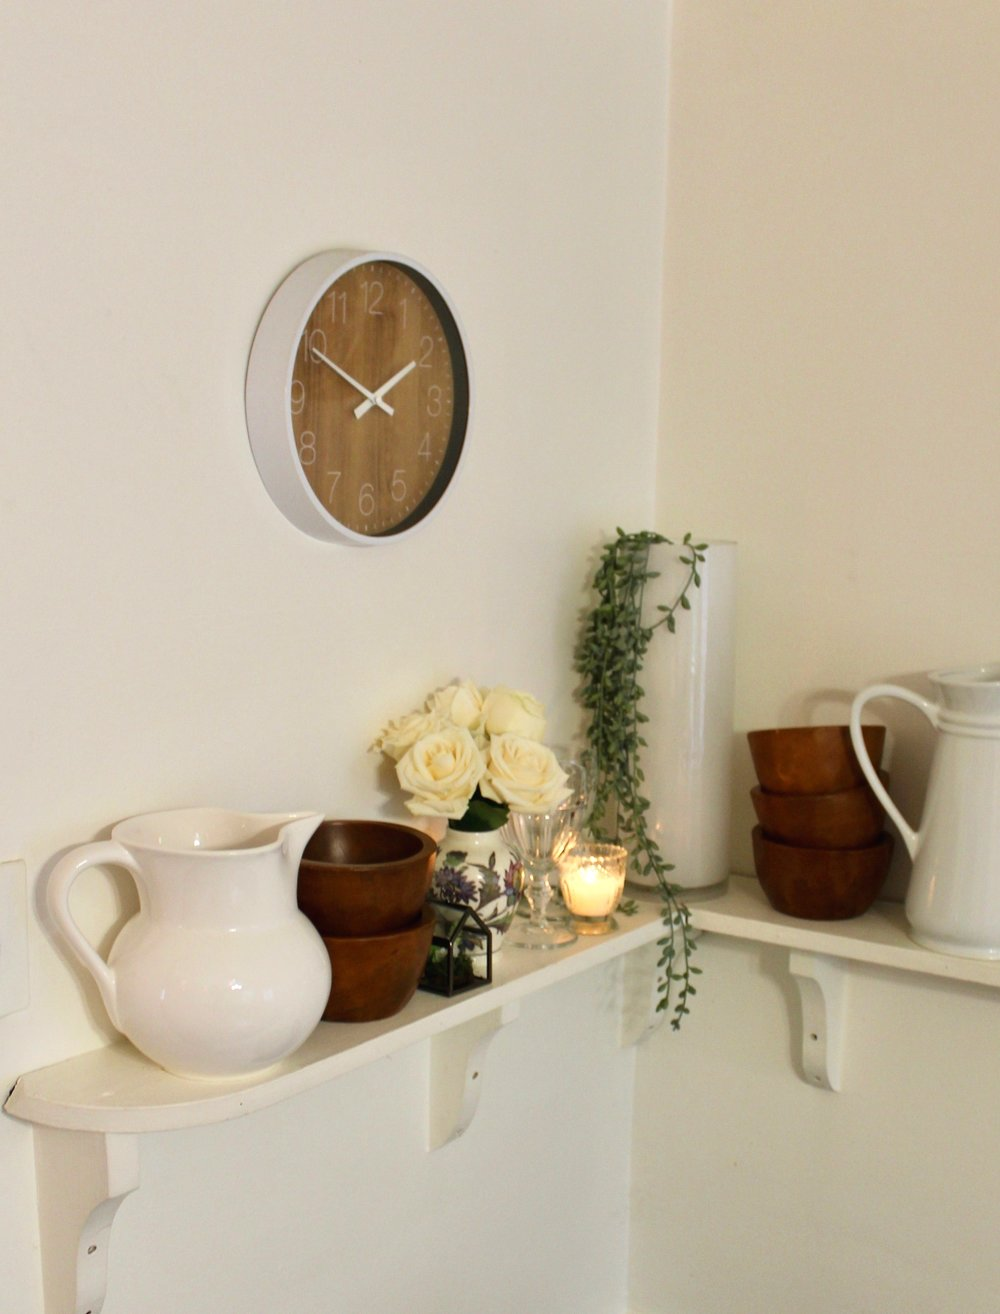 Round Wall Clock $8.99 - I bought this clock when we first moved into our apartment, I was looking for something simple & mainly white so this was perfect! It is one of the very few things I have never switched out because it goes with everything!Click here to shop